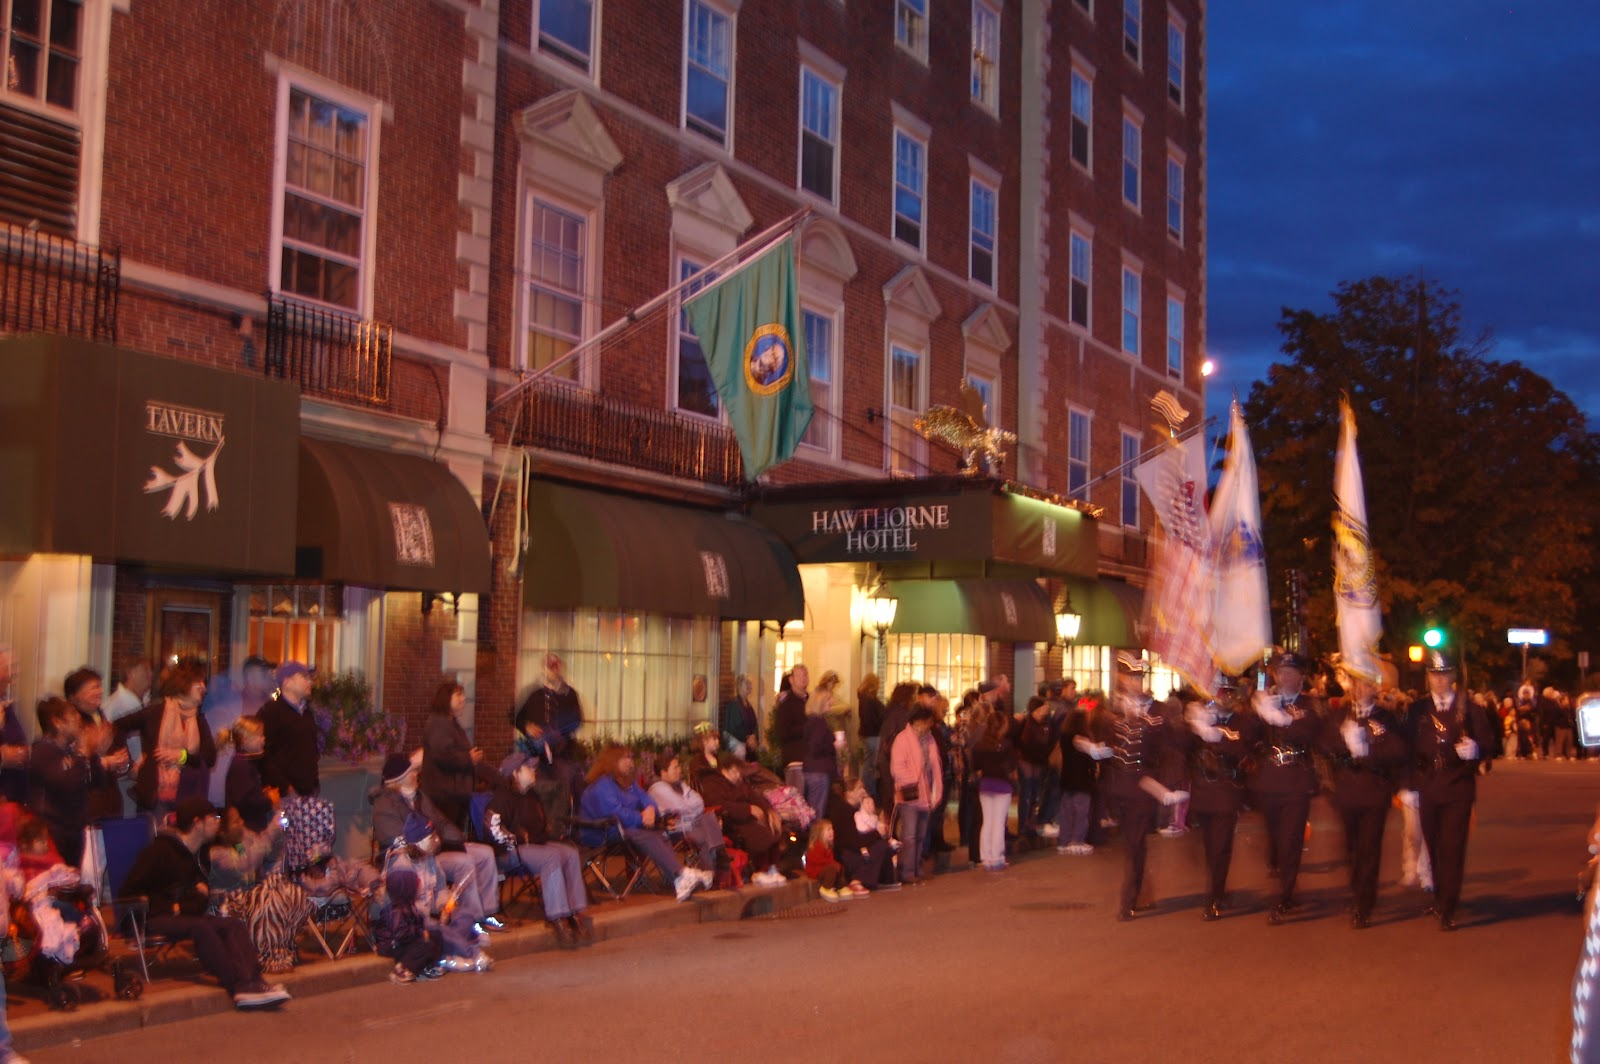 Collection Hotels In Salem Ma For Halloween Pictures. Hawthorne ...